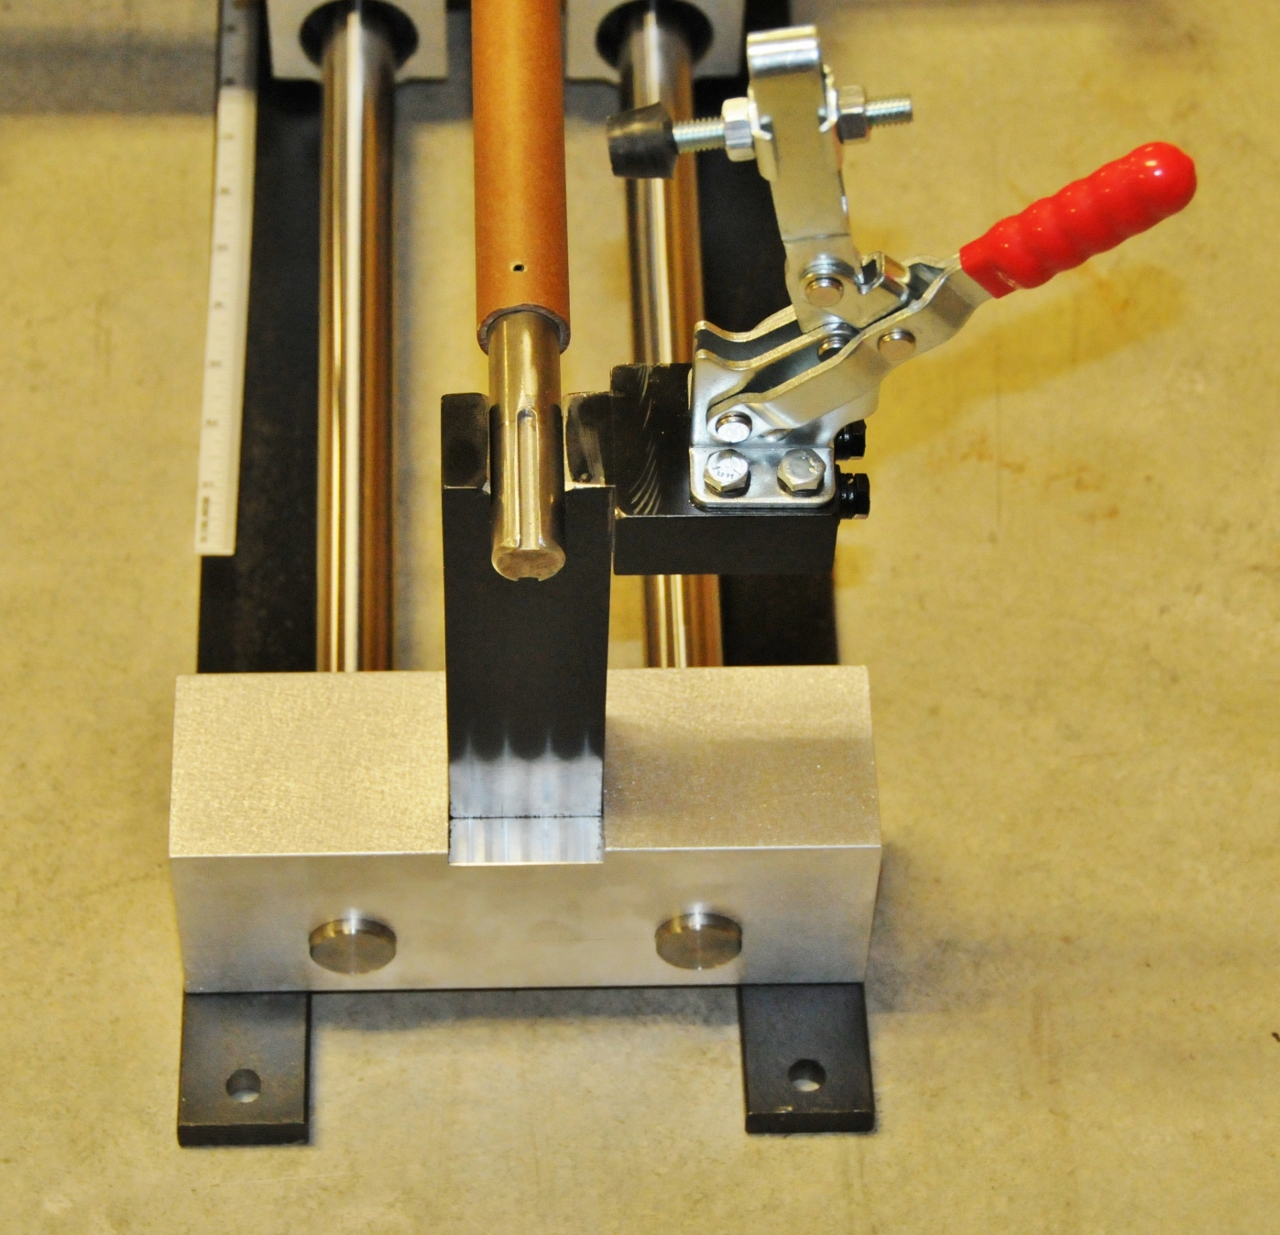 Image of the General Roll Leaf HDFC-1000 foil cutter